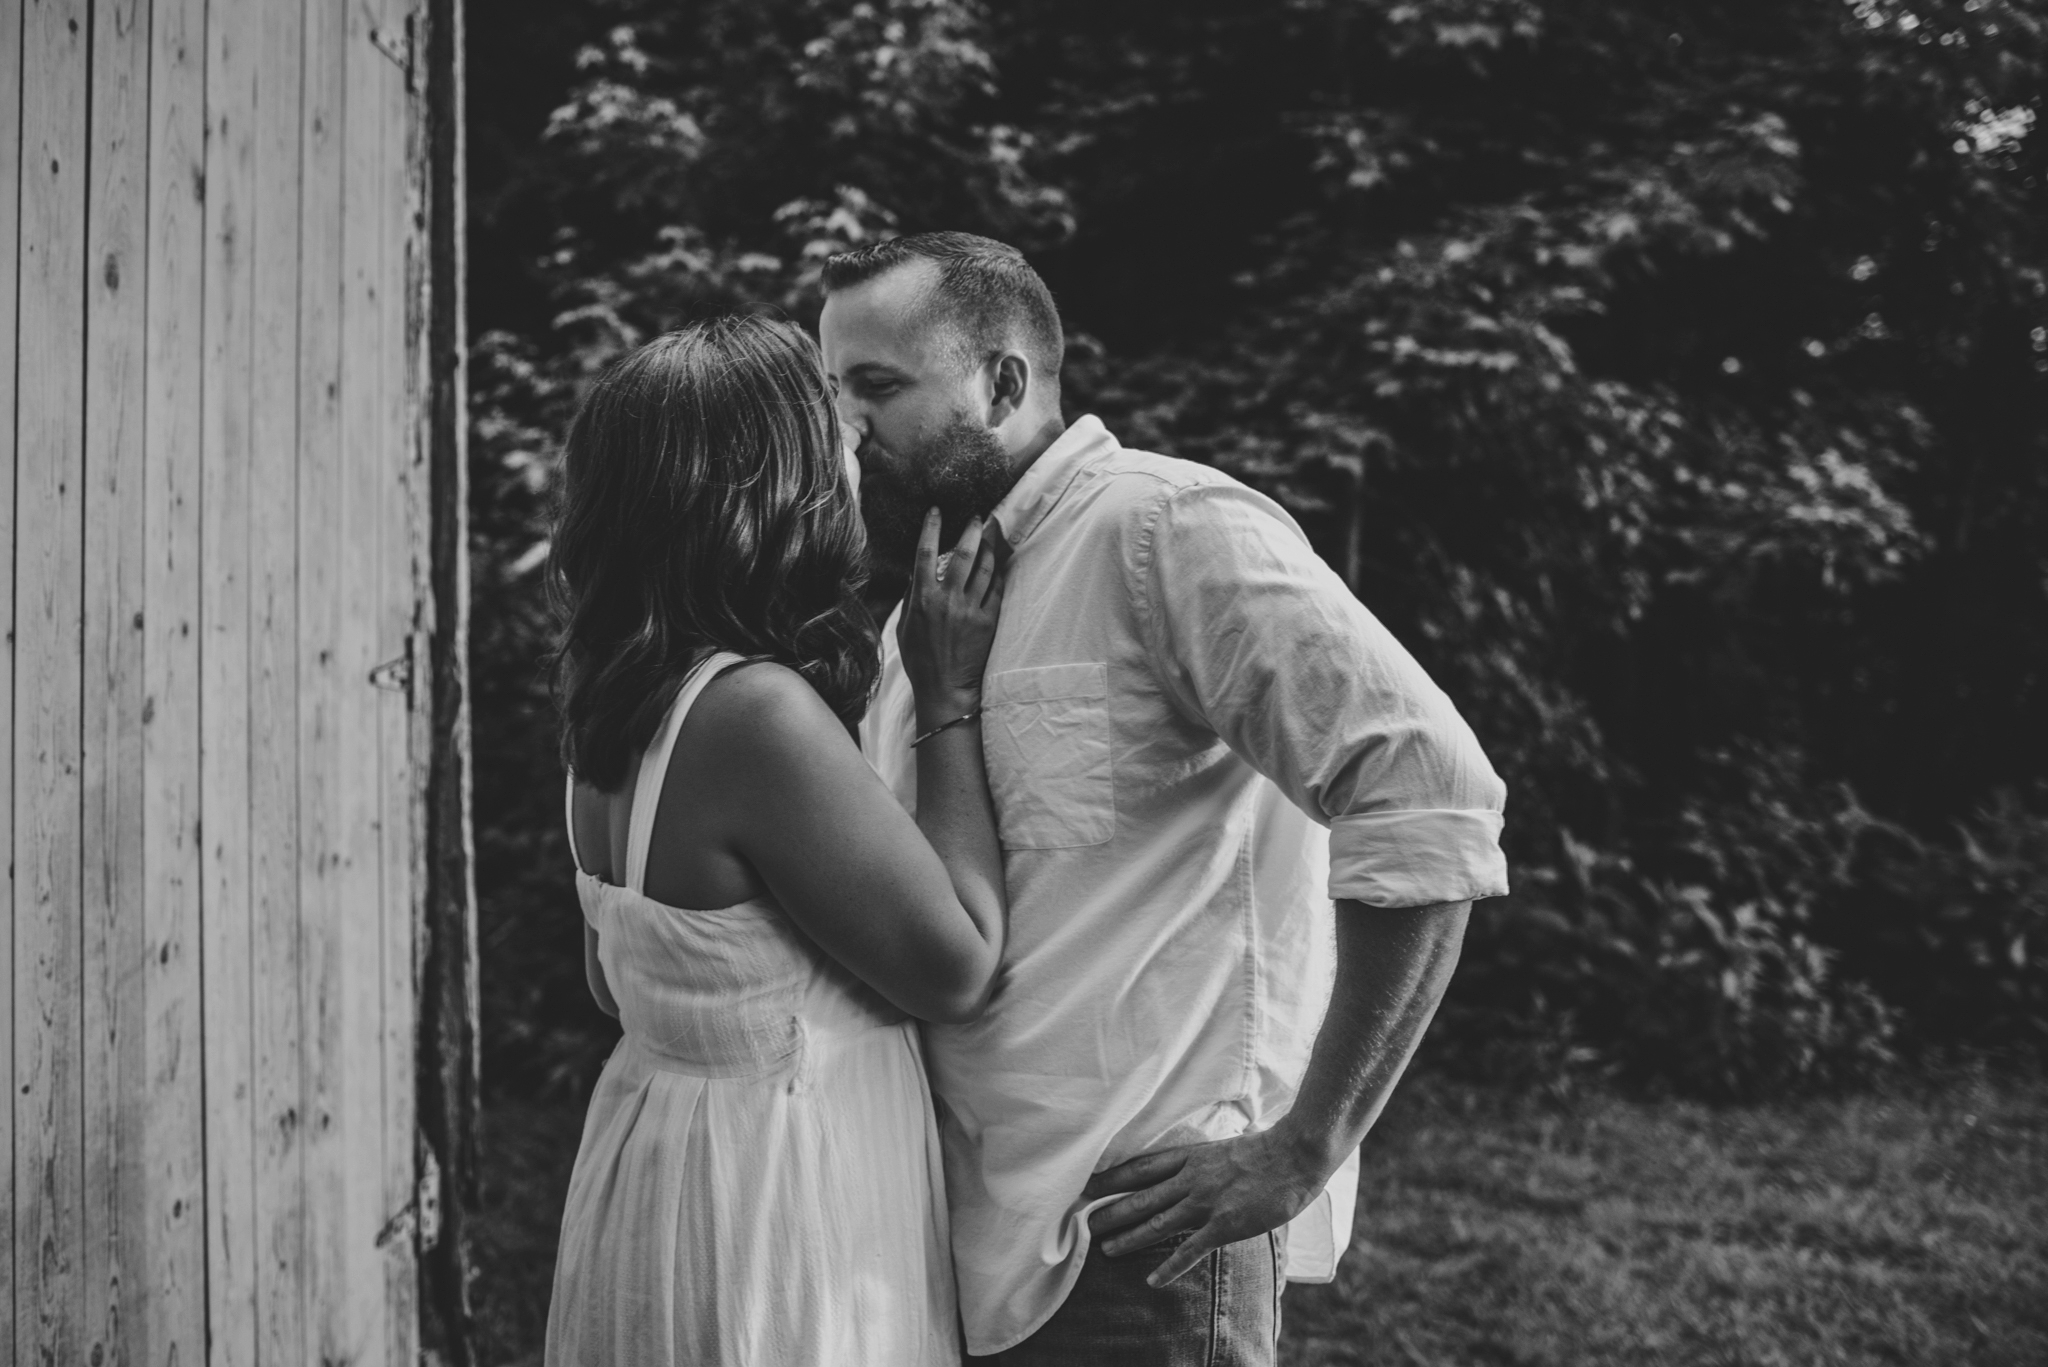 The couple share a kiss by the barn for their engagement pictures with Rose Trail Images at Horseshoe Park in Wake Forest, North Carolina.